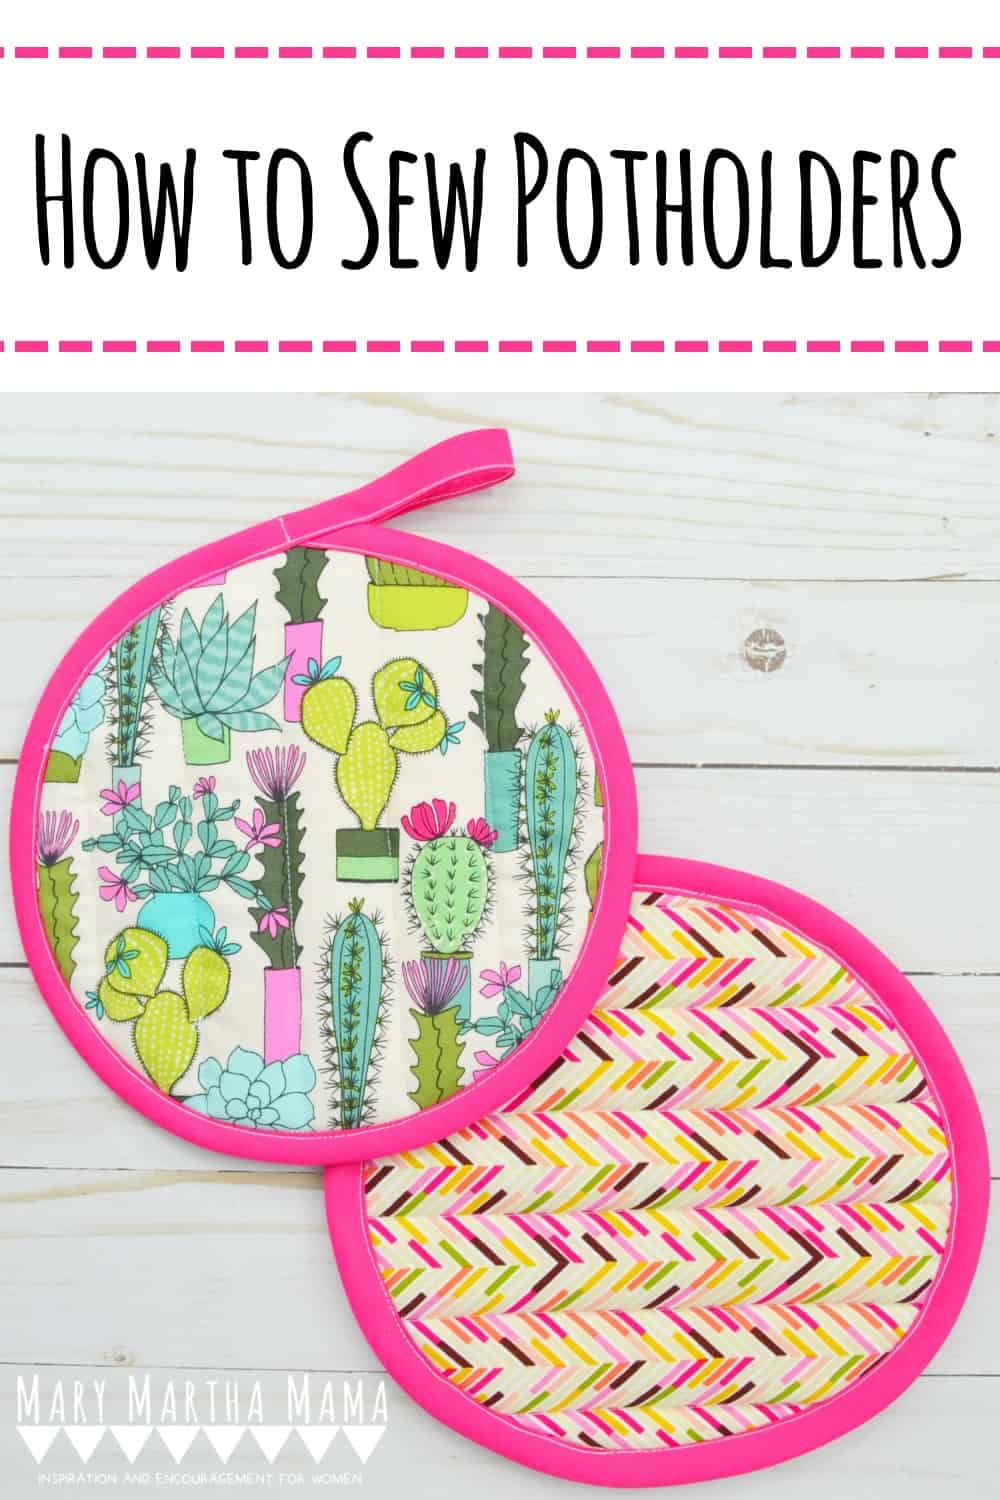 How to Sew Potholders in 8 Easy Steps